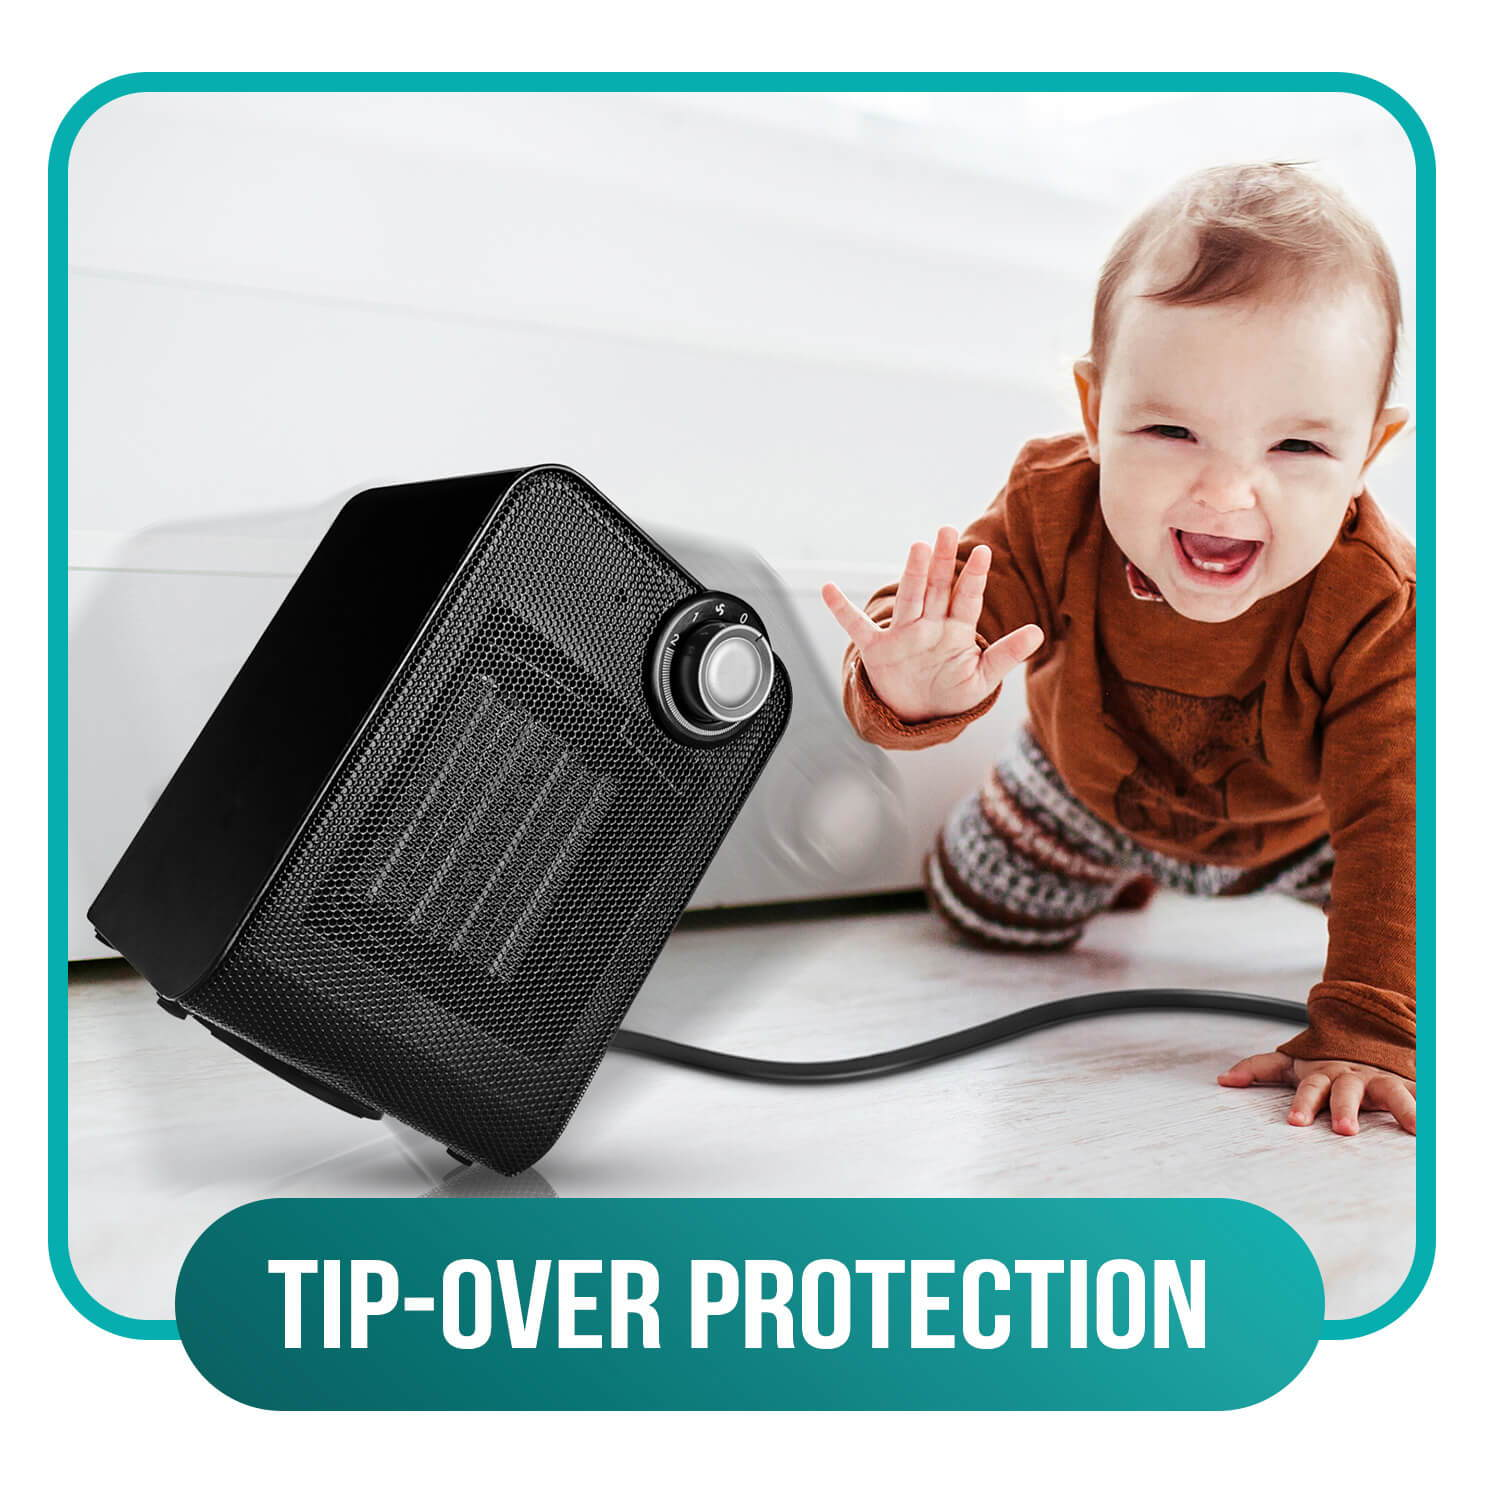 Tip-Over Protection